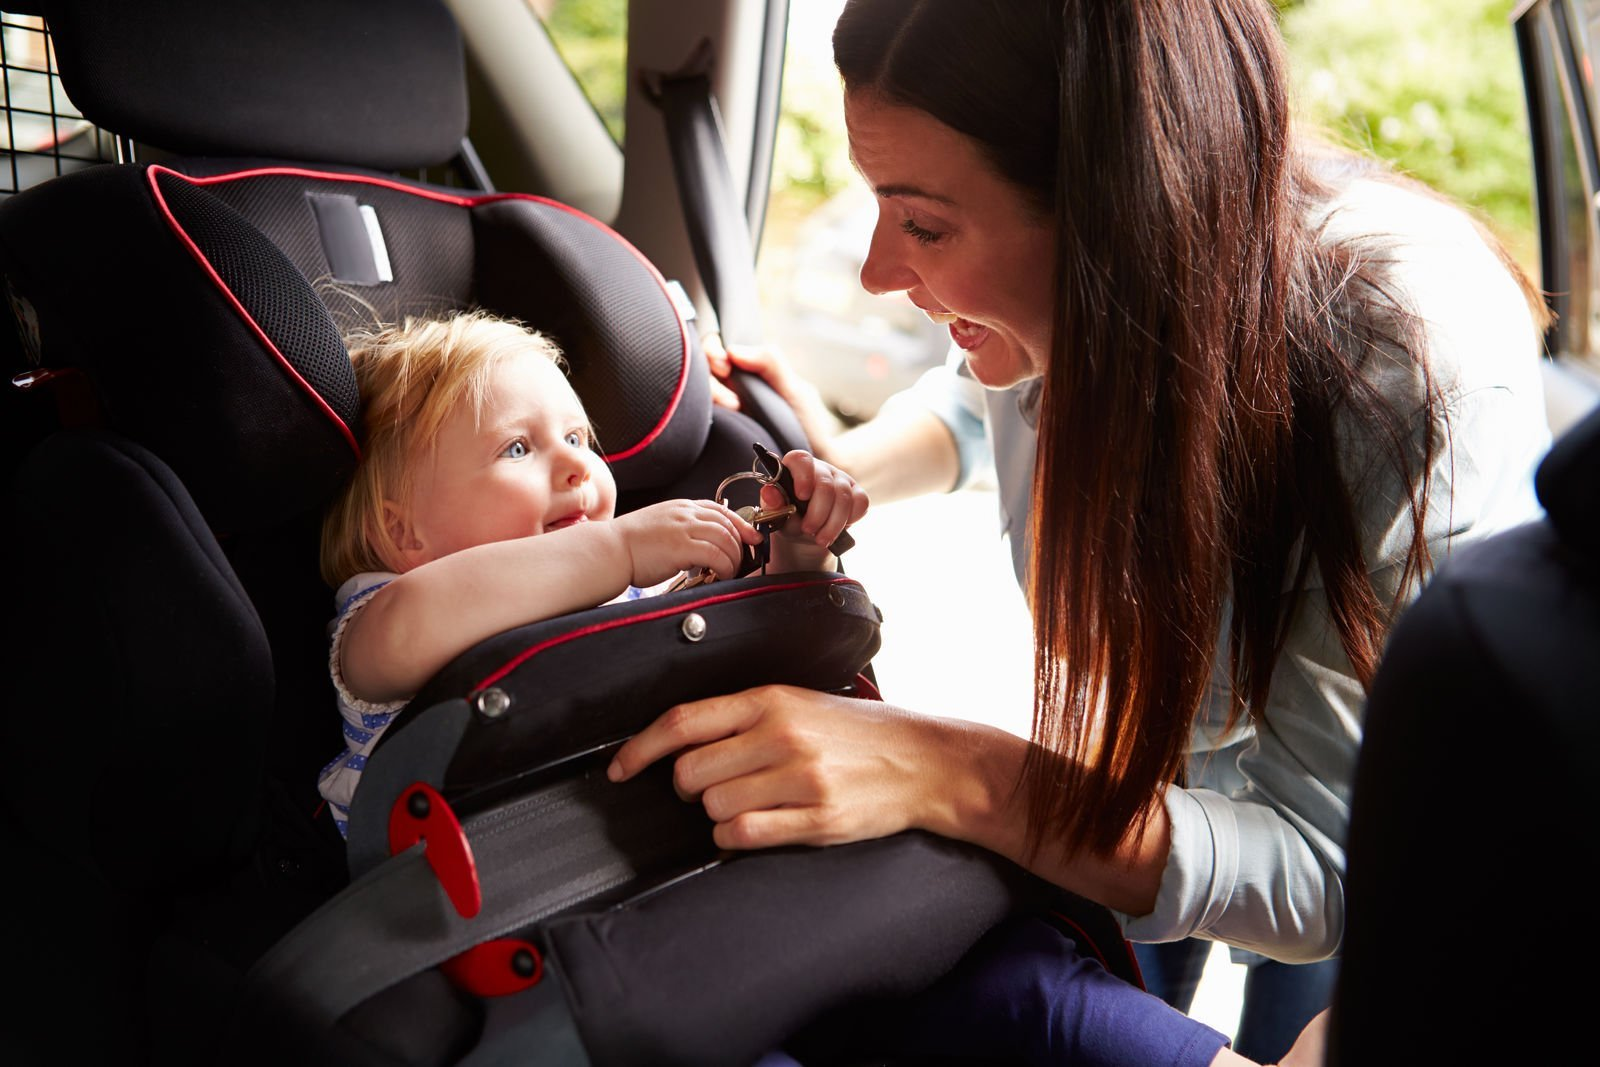 Alabama Car Seat Laws For Kids